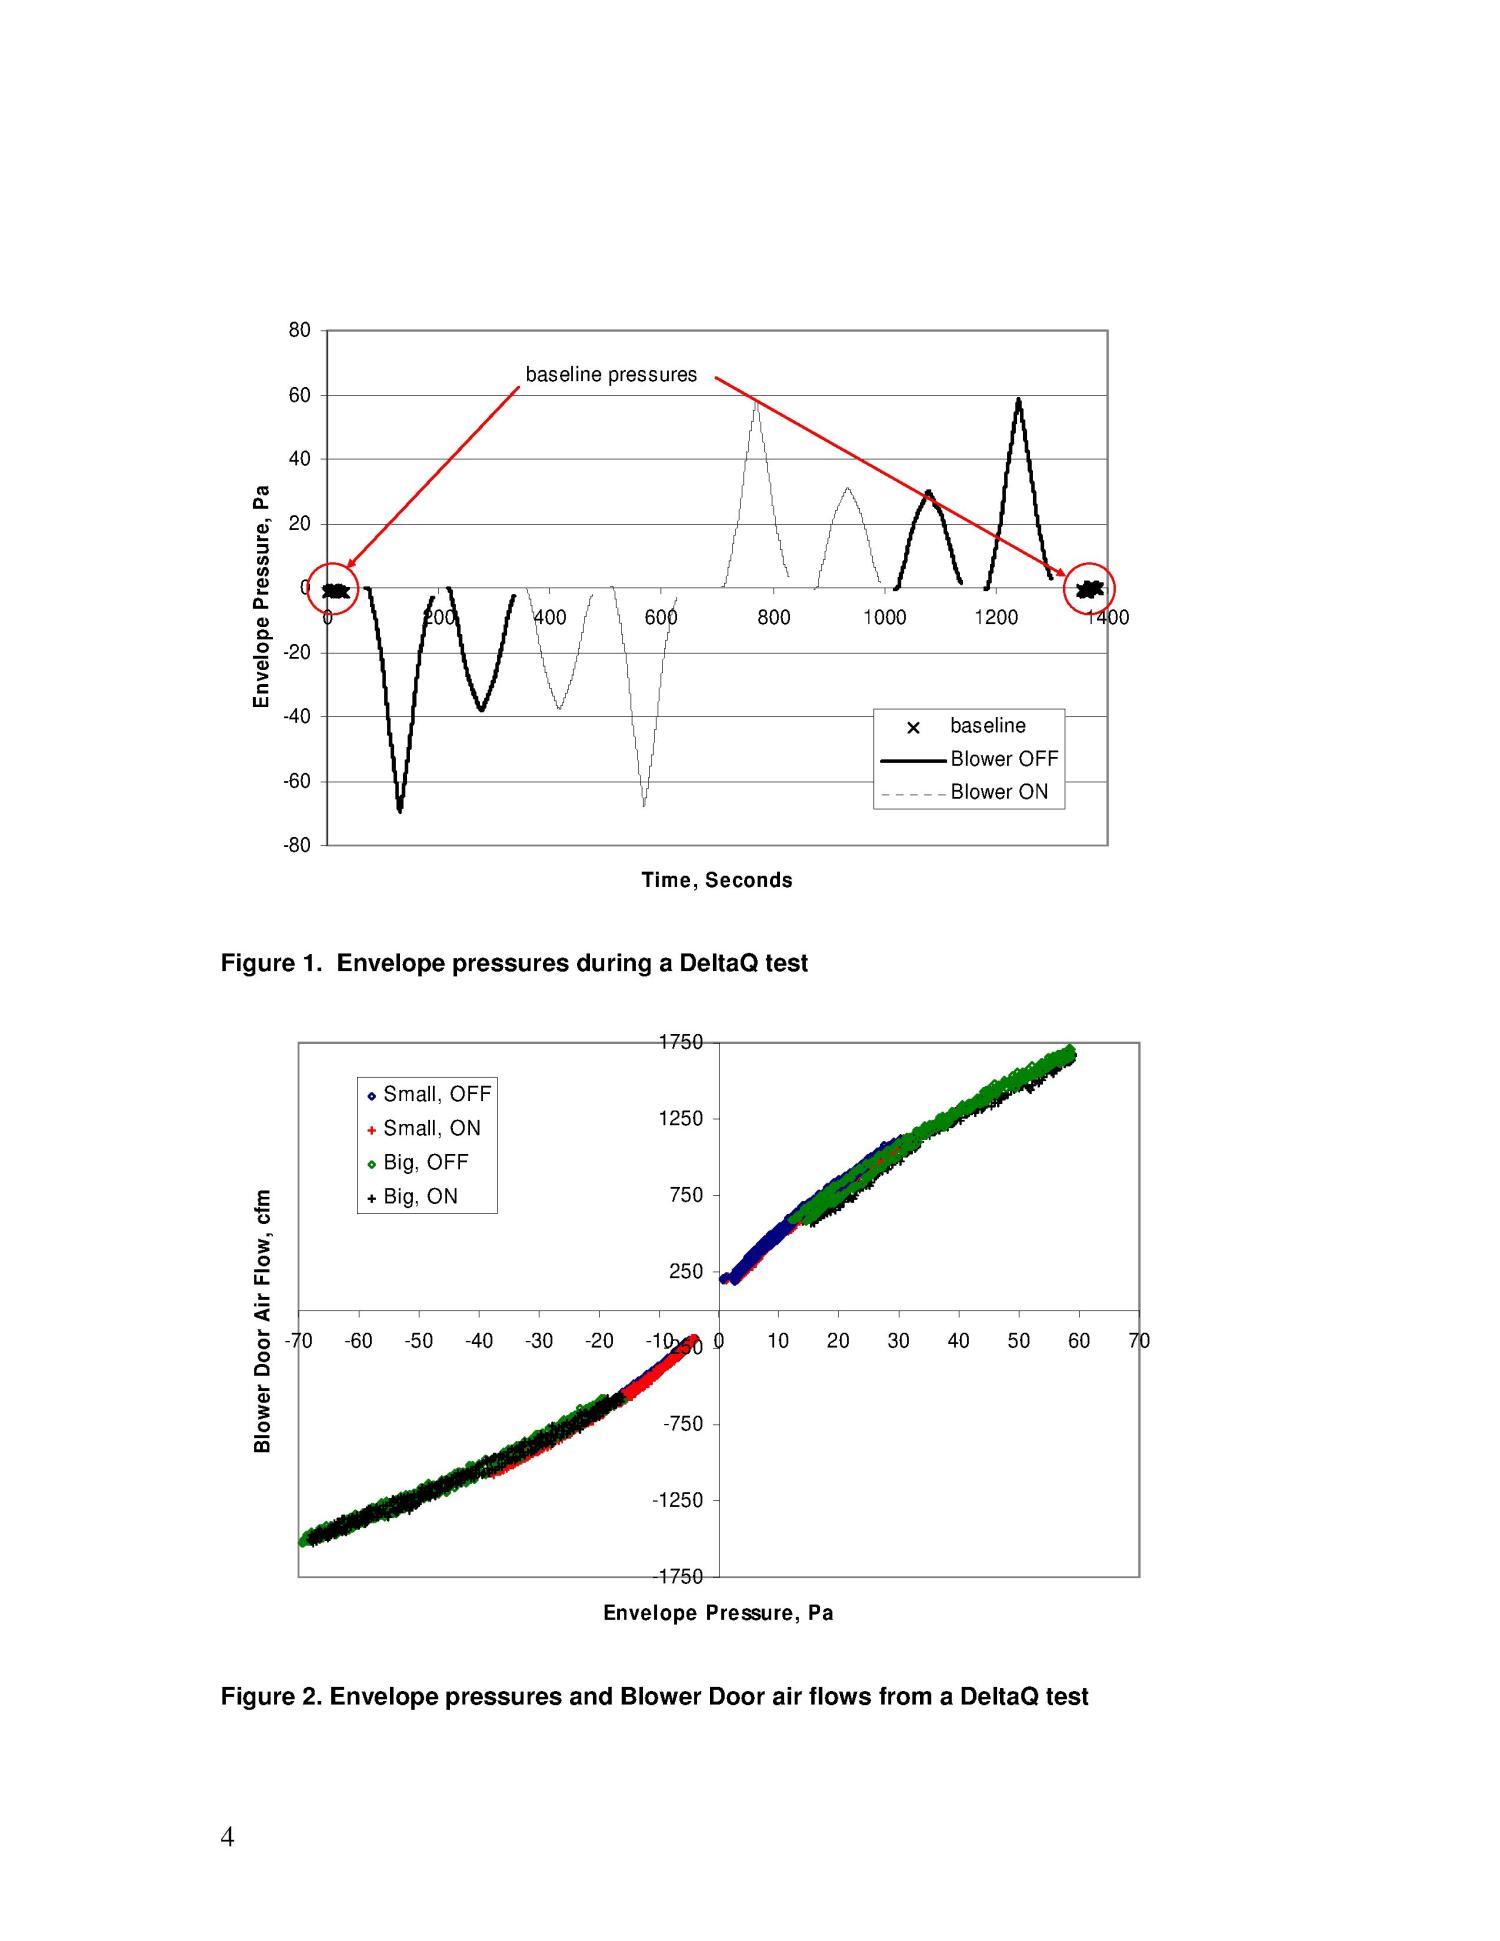 Evaluation of the Repeatability of the Delta Q Duct Leakage Testing TechniqueIncluding Investigation of Robust Analysis Techniques and Estimates of Weather Induced Uncertainty                                                                                                      [Sequence #]: 4 of 58